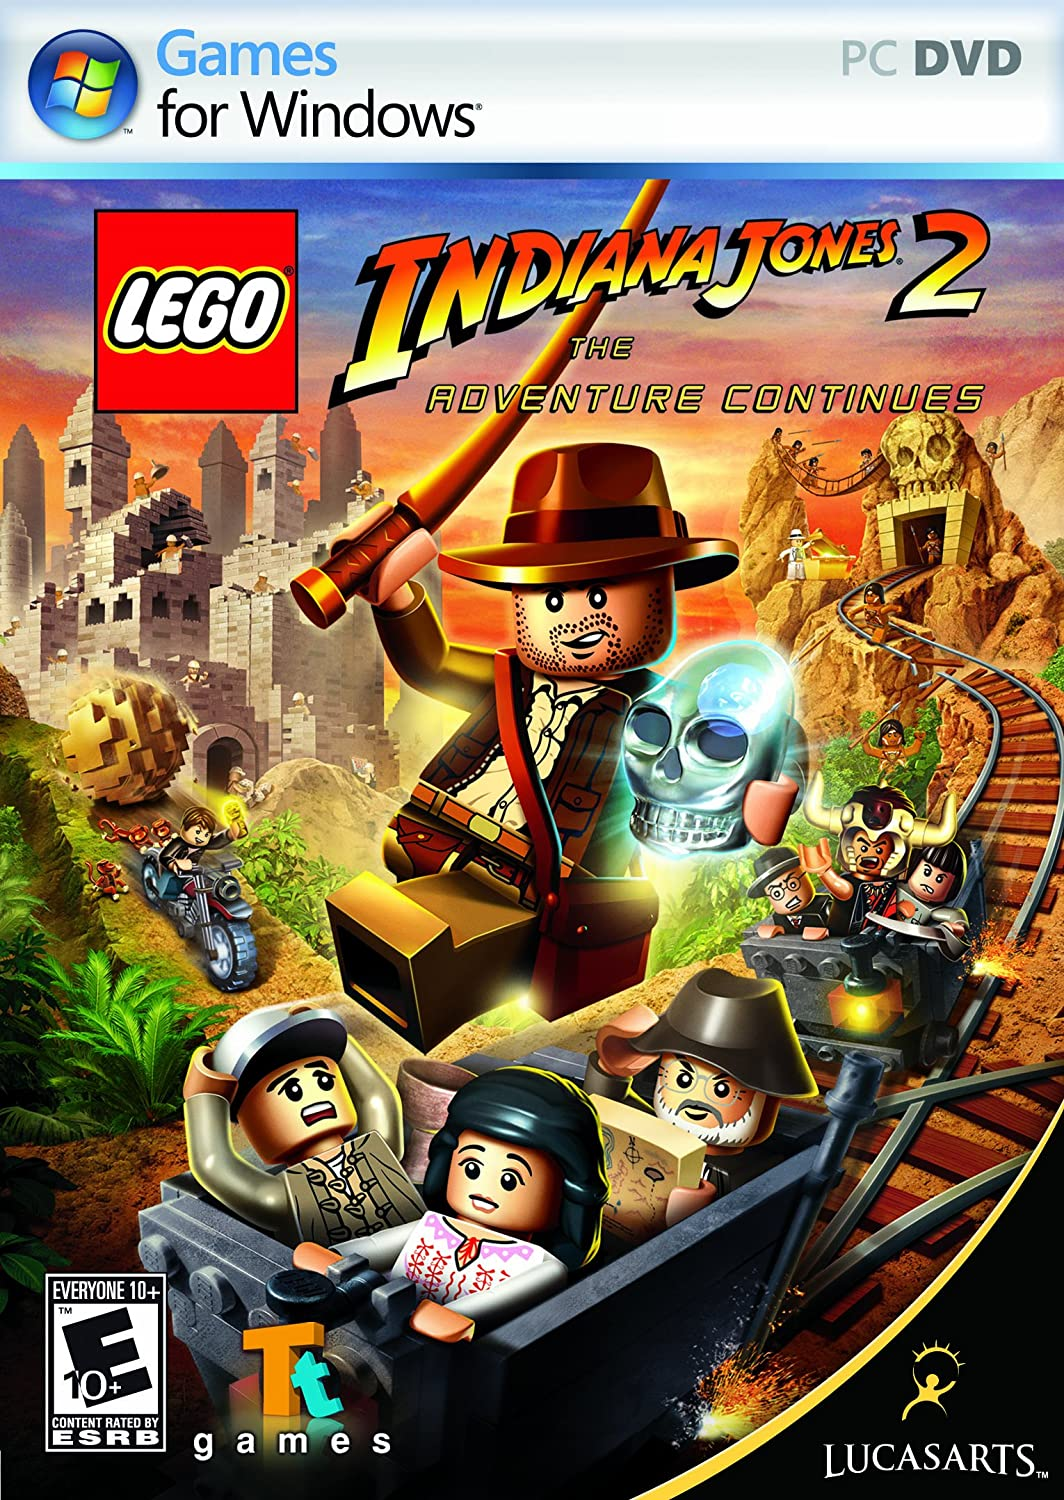 LEGO Indiana Jones 2: The Adventure Continues ihs–indiana in the civil war era 1850–1880 – the history of indiana viii